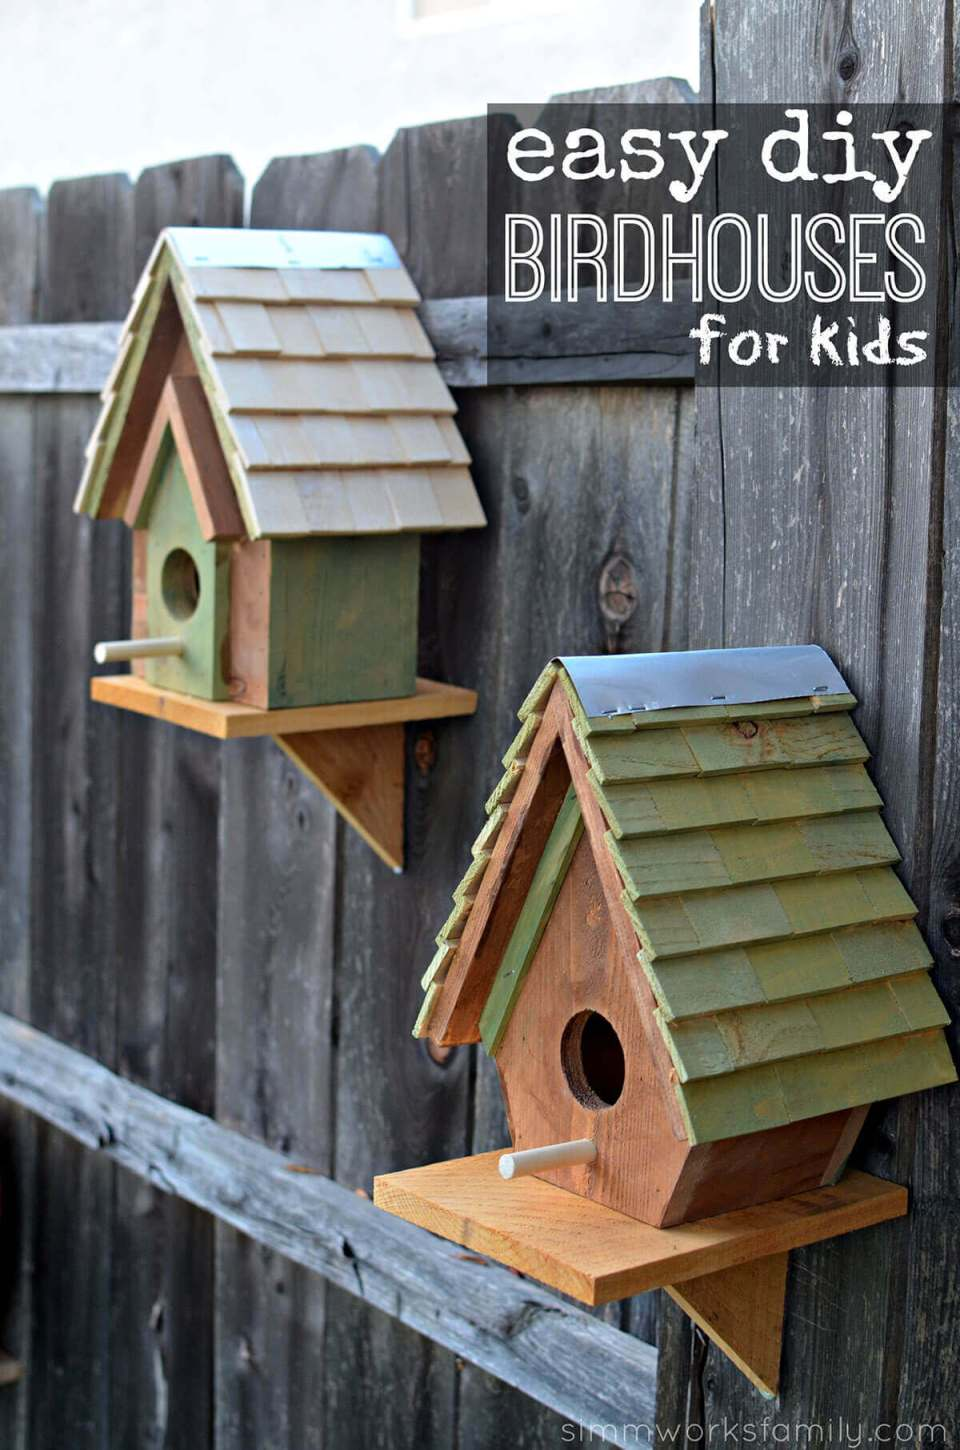 Adorable Birdhouses Hung on the Fence